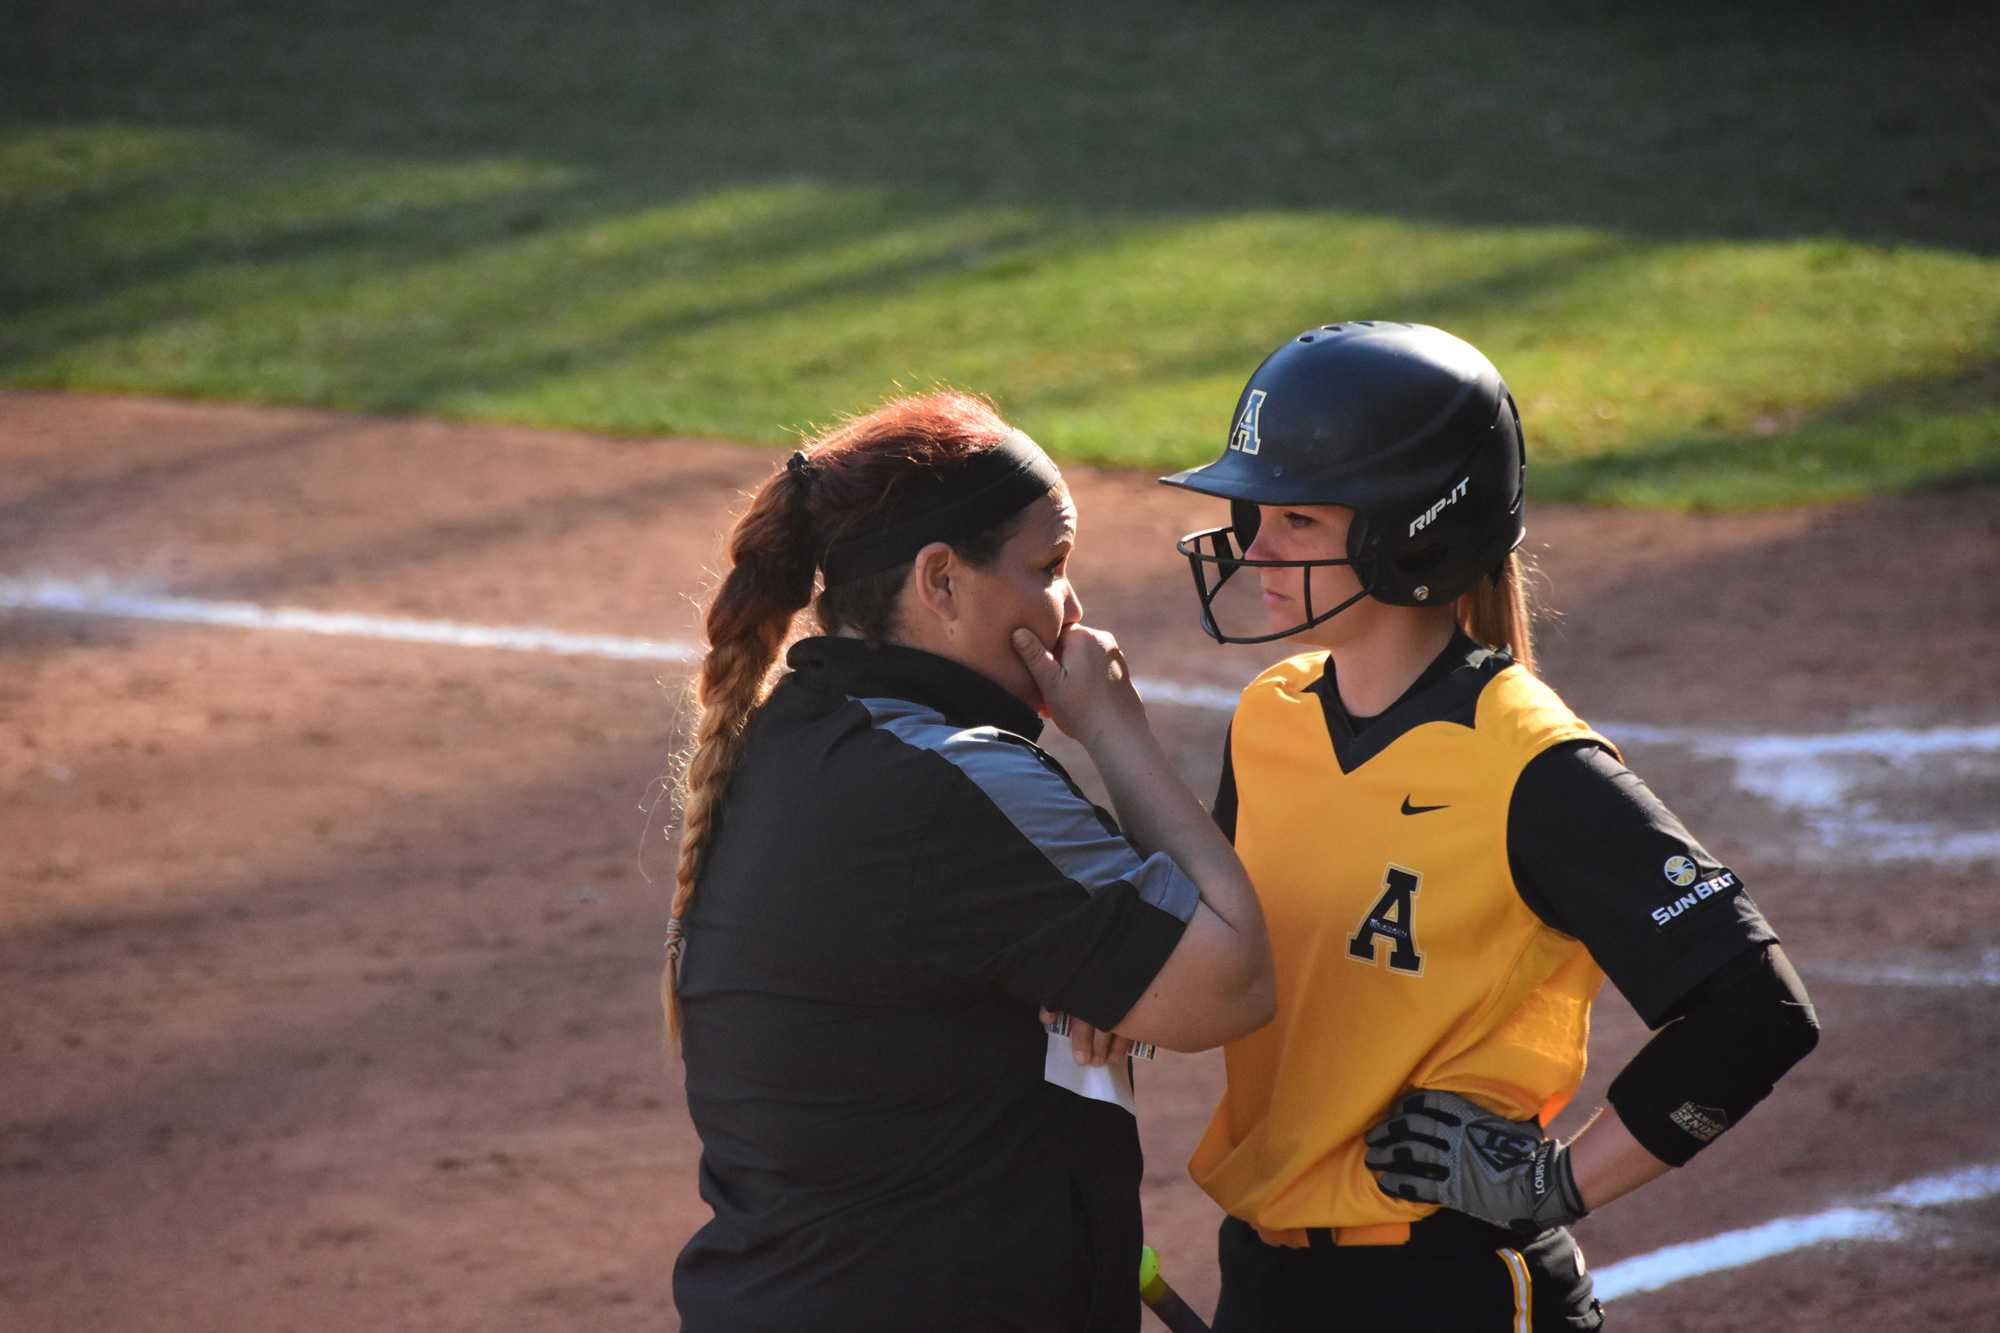 Sophomore third baseman Tiffany Taynor and head coach Janice Savage conference before Taynor's at bat against Morehead State on Tuesday, March 22. 0-7 (L). Photo by Lee Sanderlin.